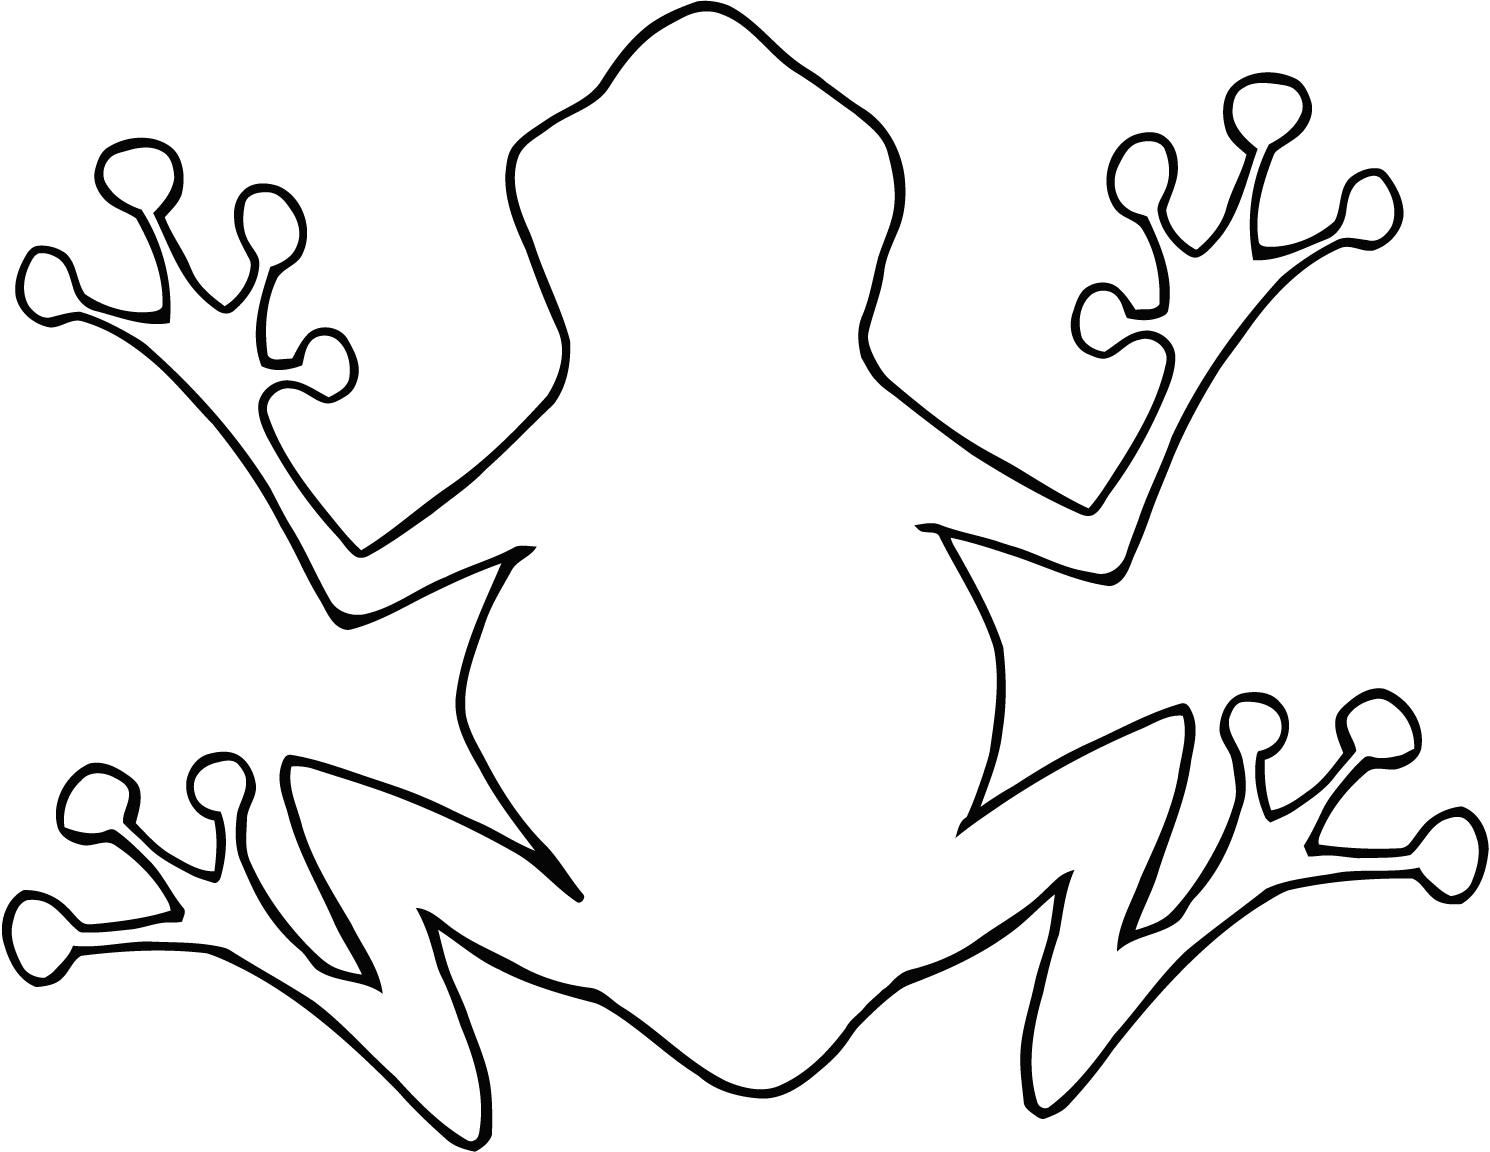 Coloring Sheet Of Cartoon Outline Frog For Kids Frog Coloring